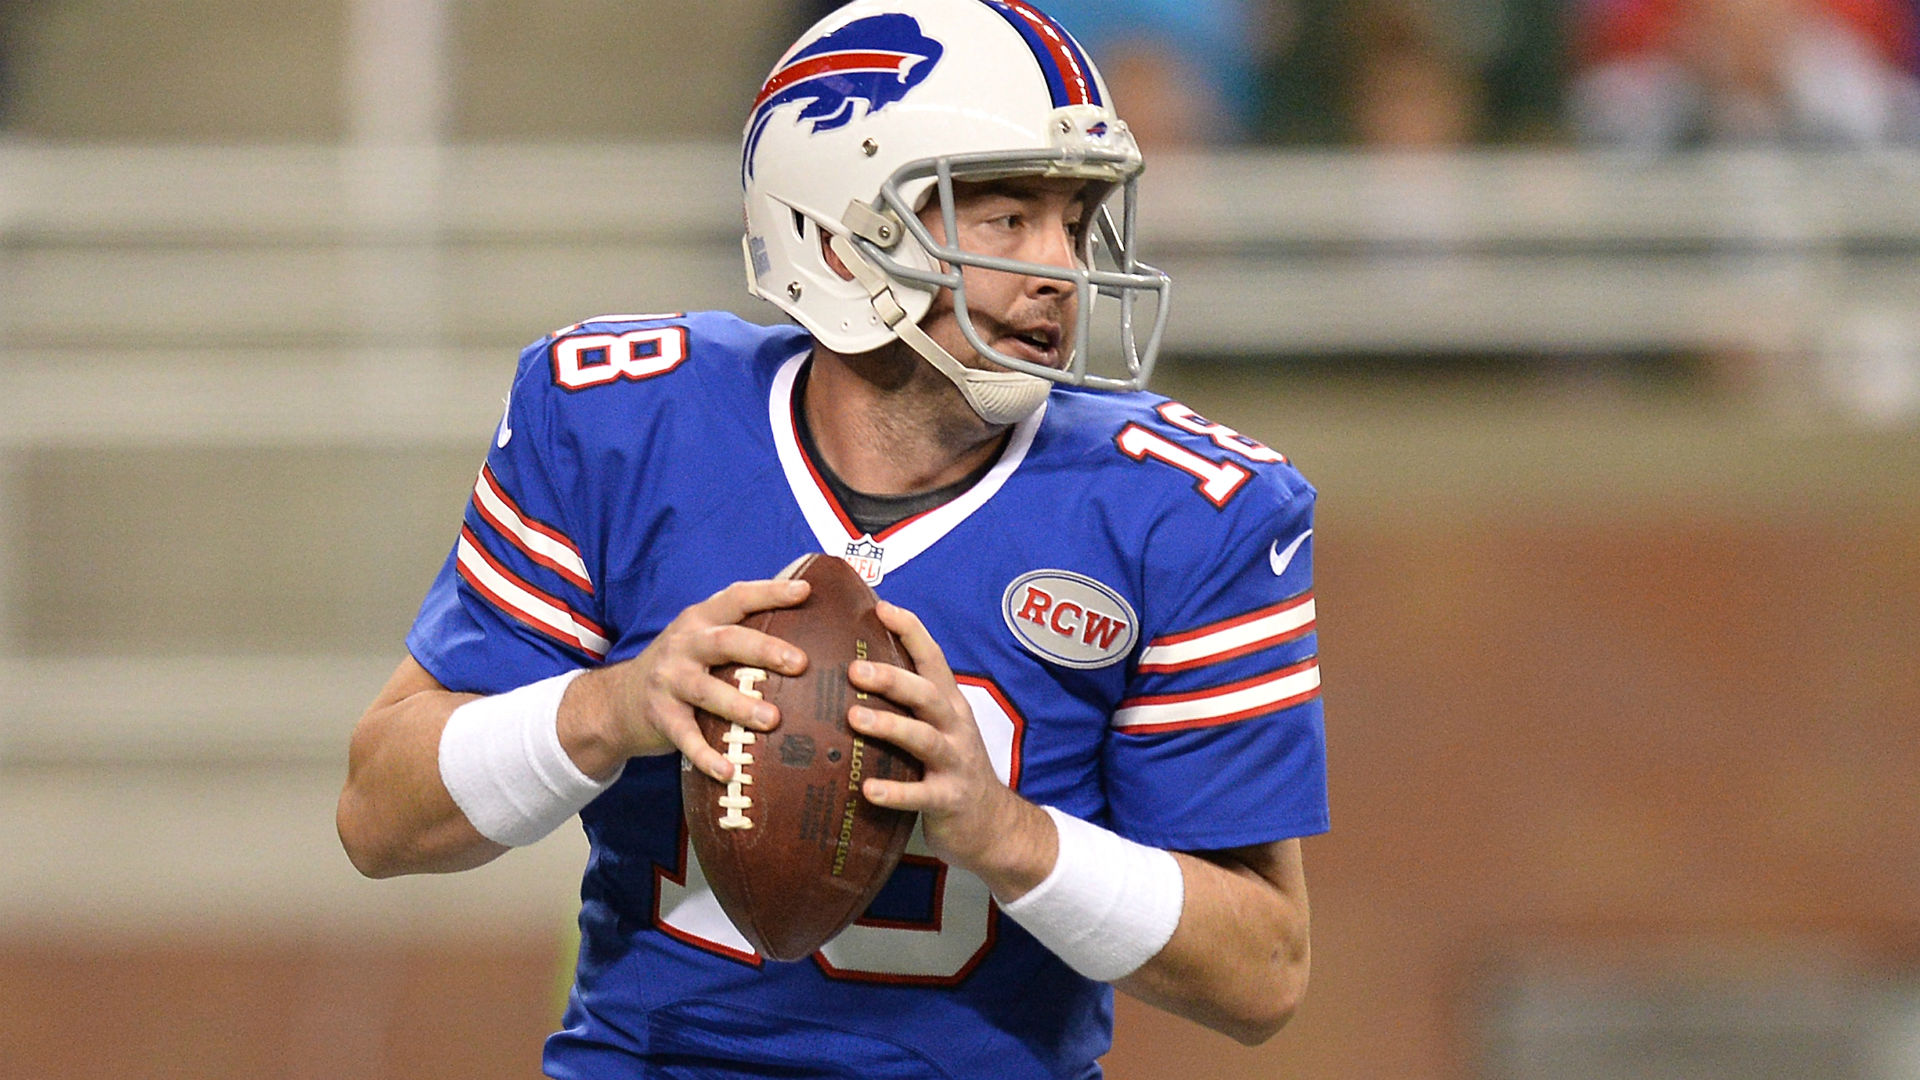 Browns vs. Bills betting preview and pick – Crucial game for both teams